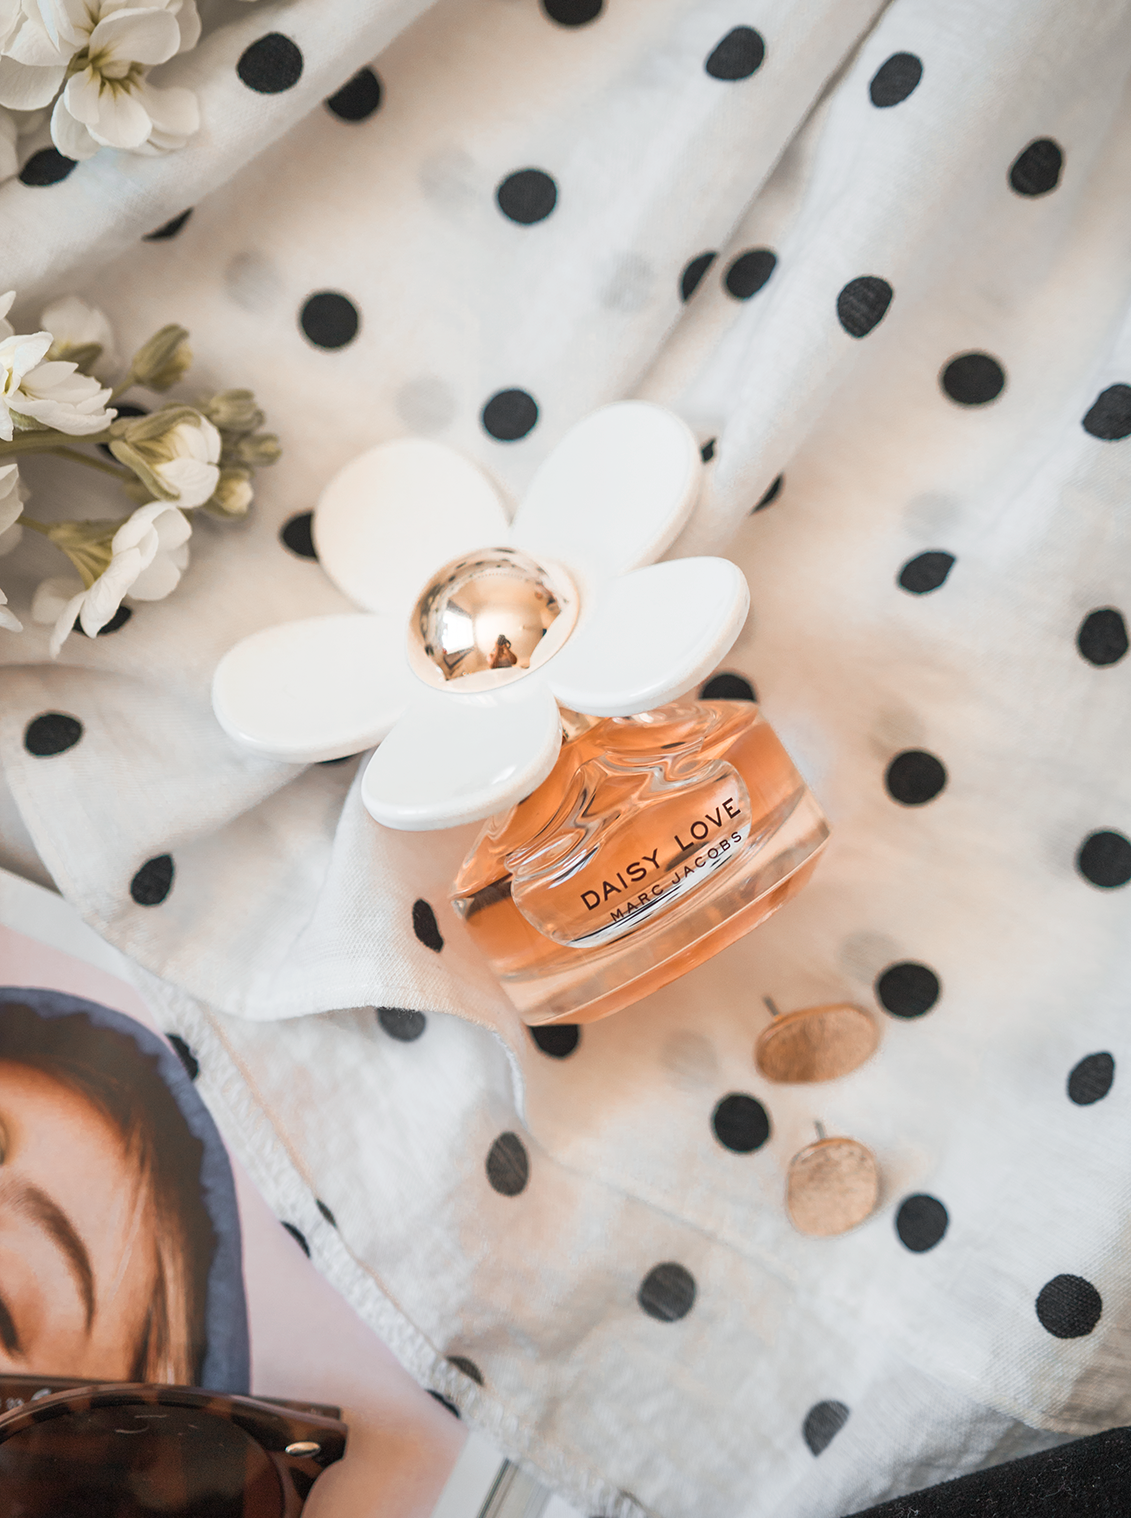 marc jacobs daisy love fragrance direct perfume review